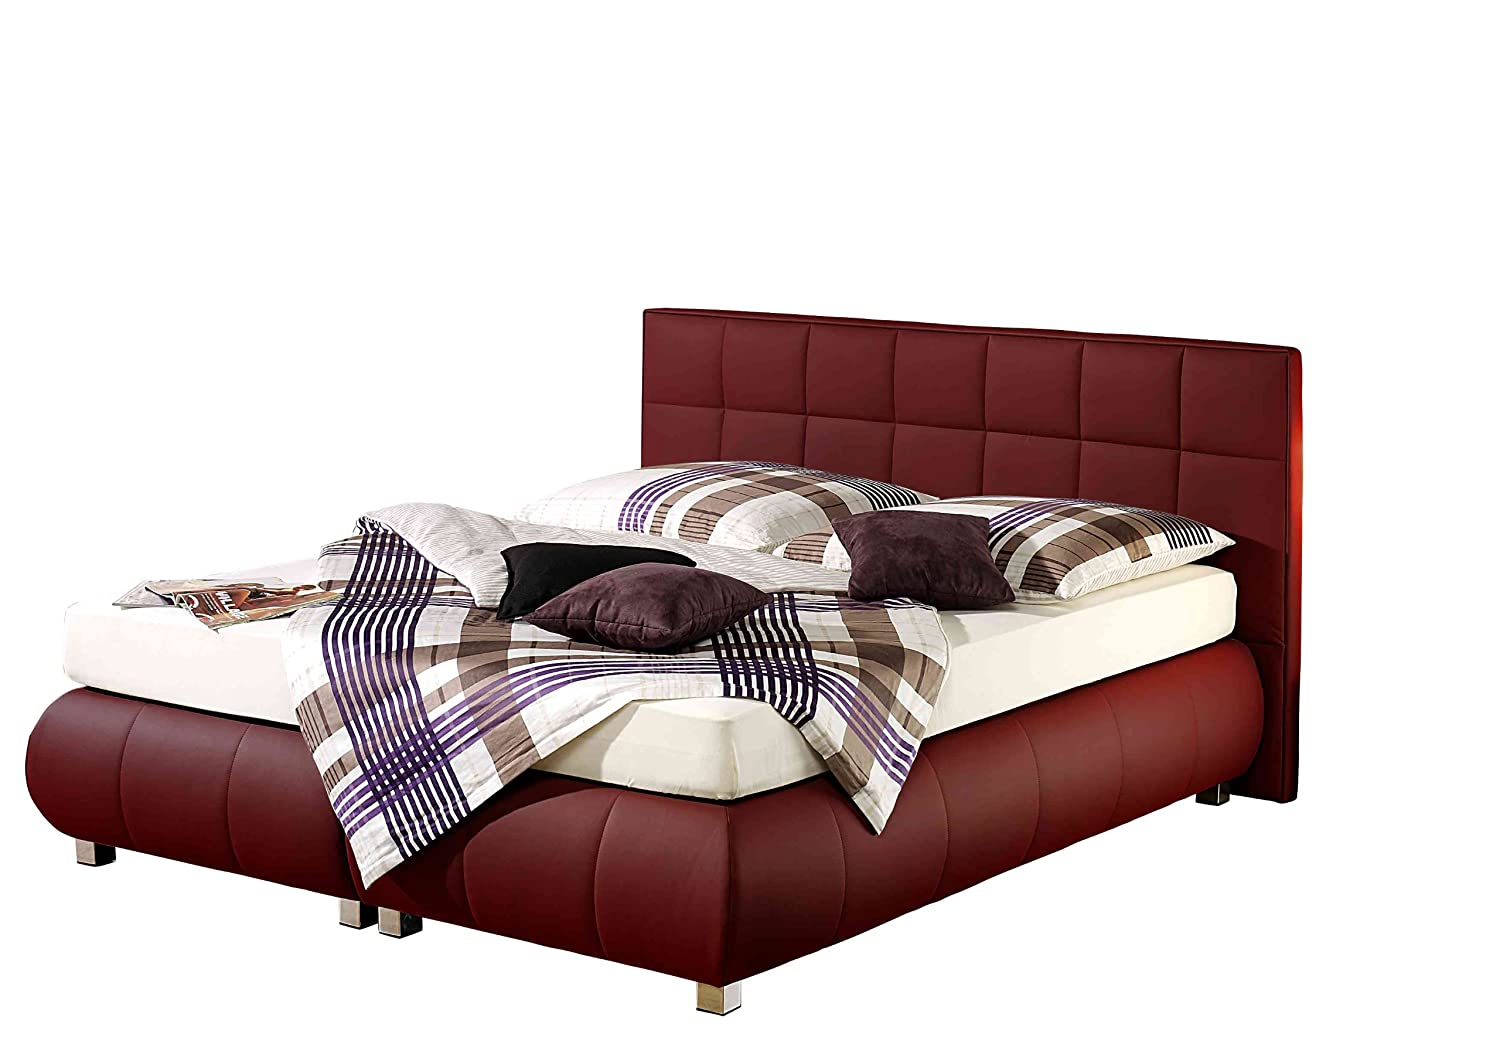 Maintal Betten 234200-4793 Boxspringbett Elias 180 x 200 cm, bordeaux